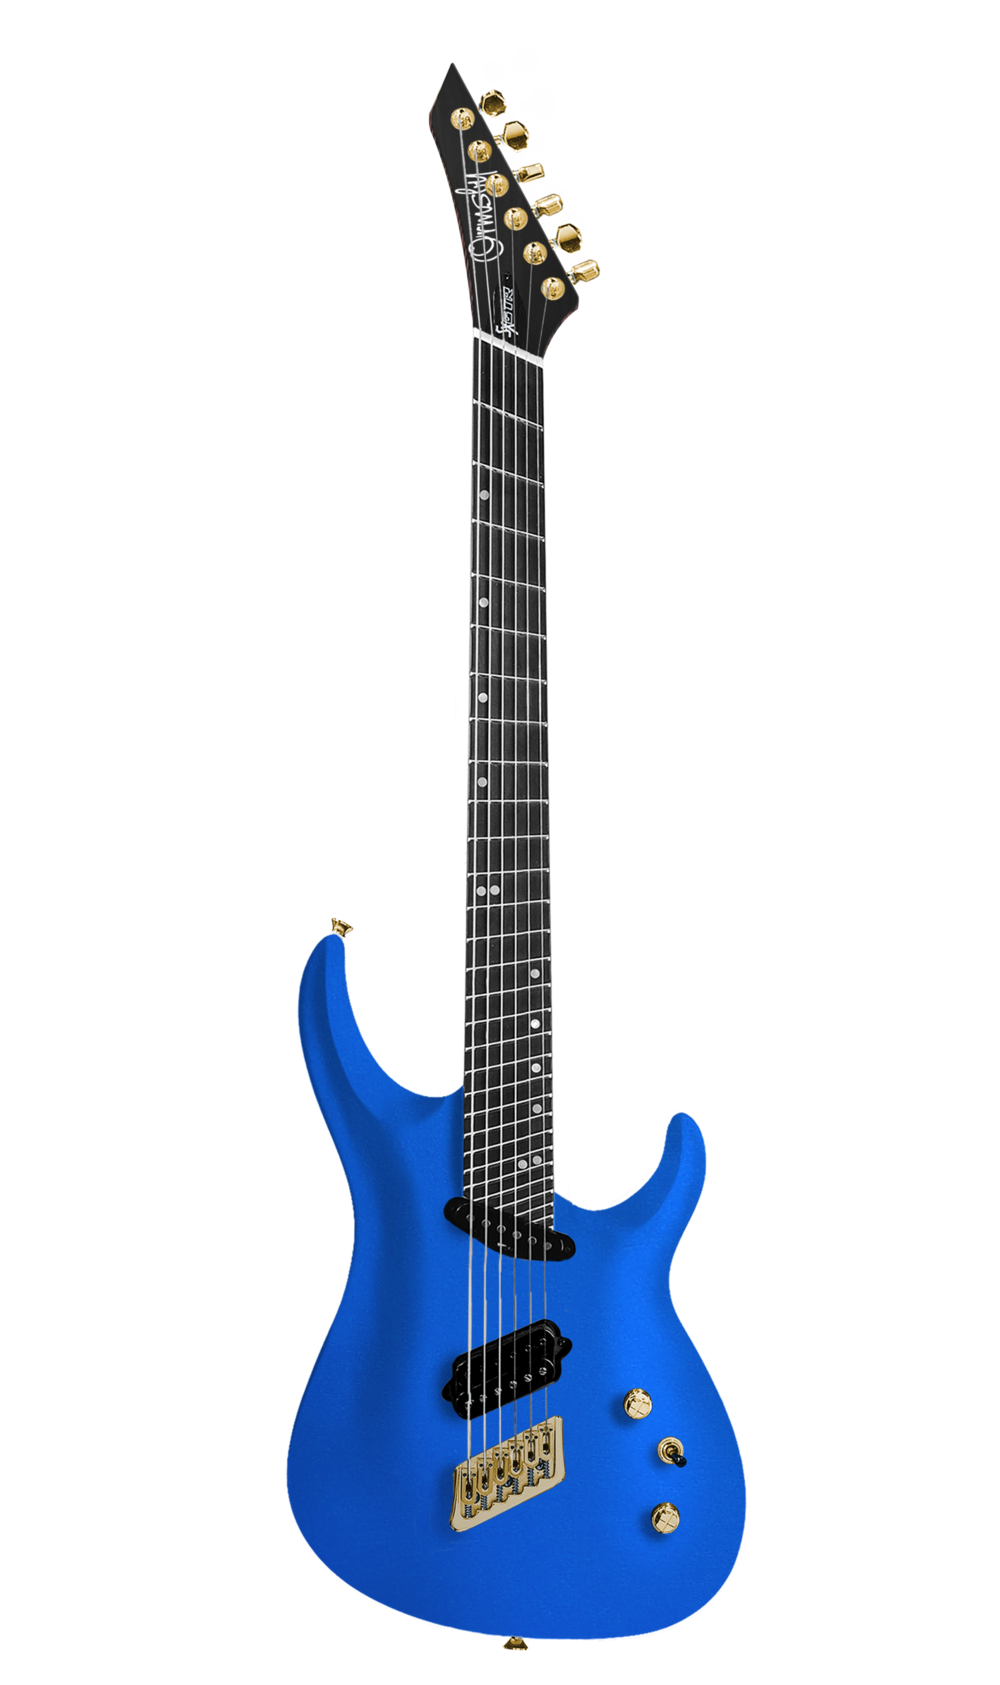 Forget-Me-Not Blue Metallic SX Carved Top